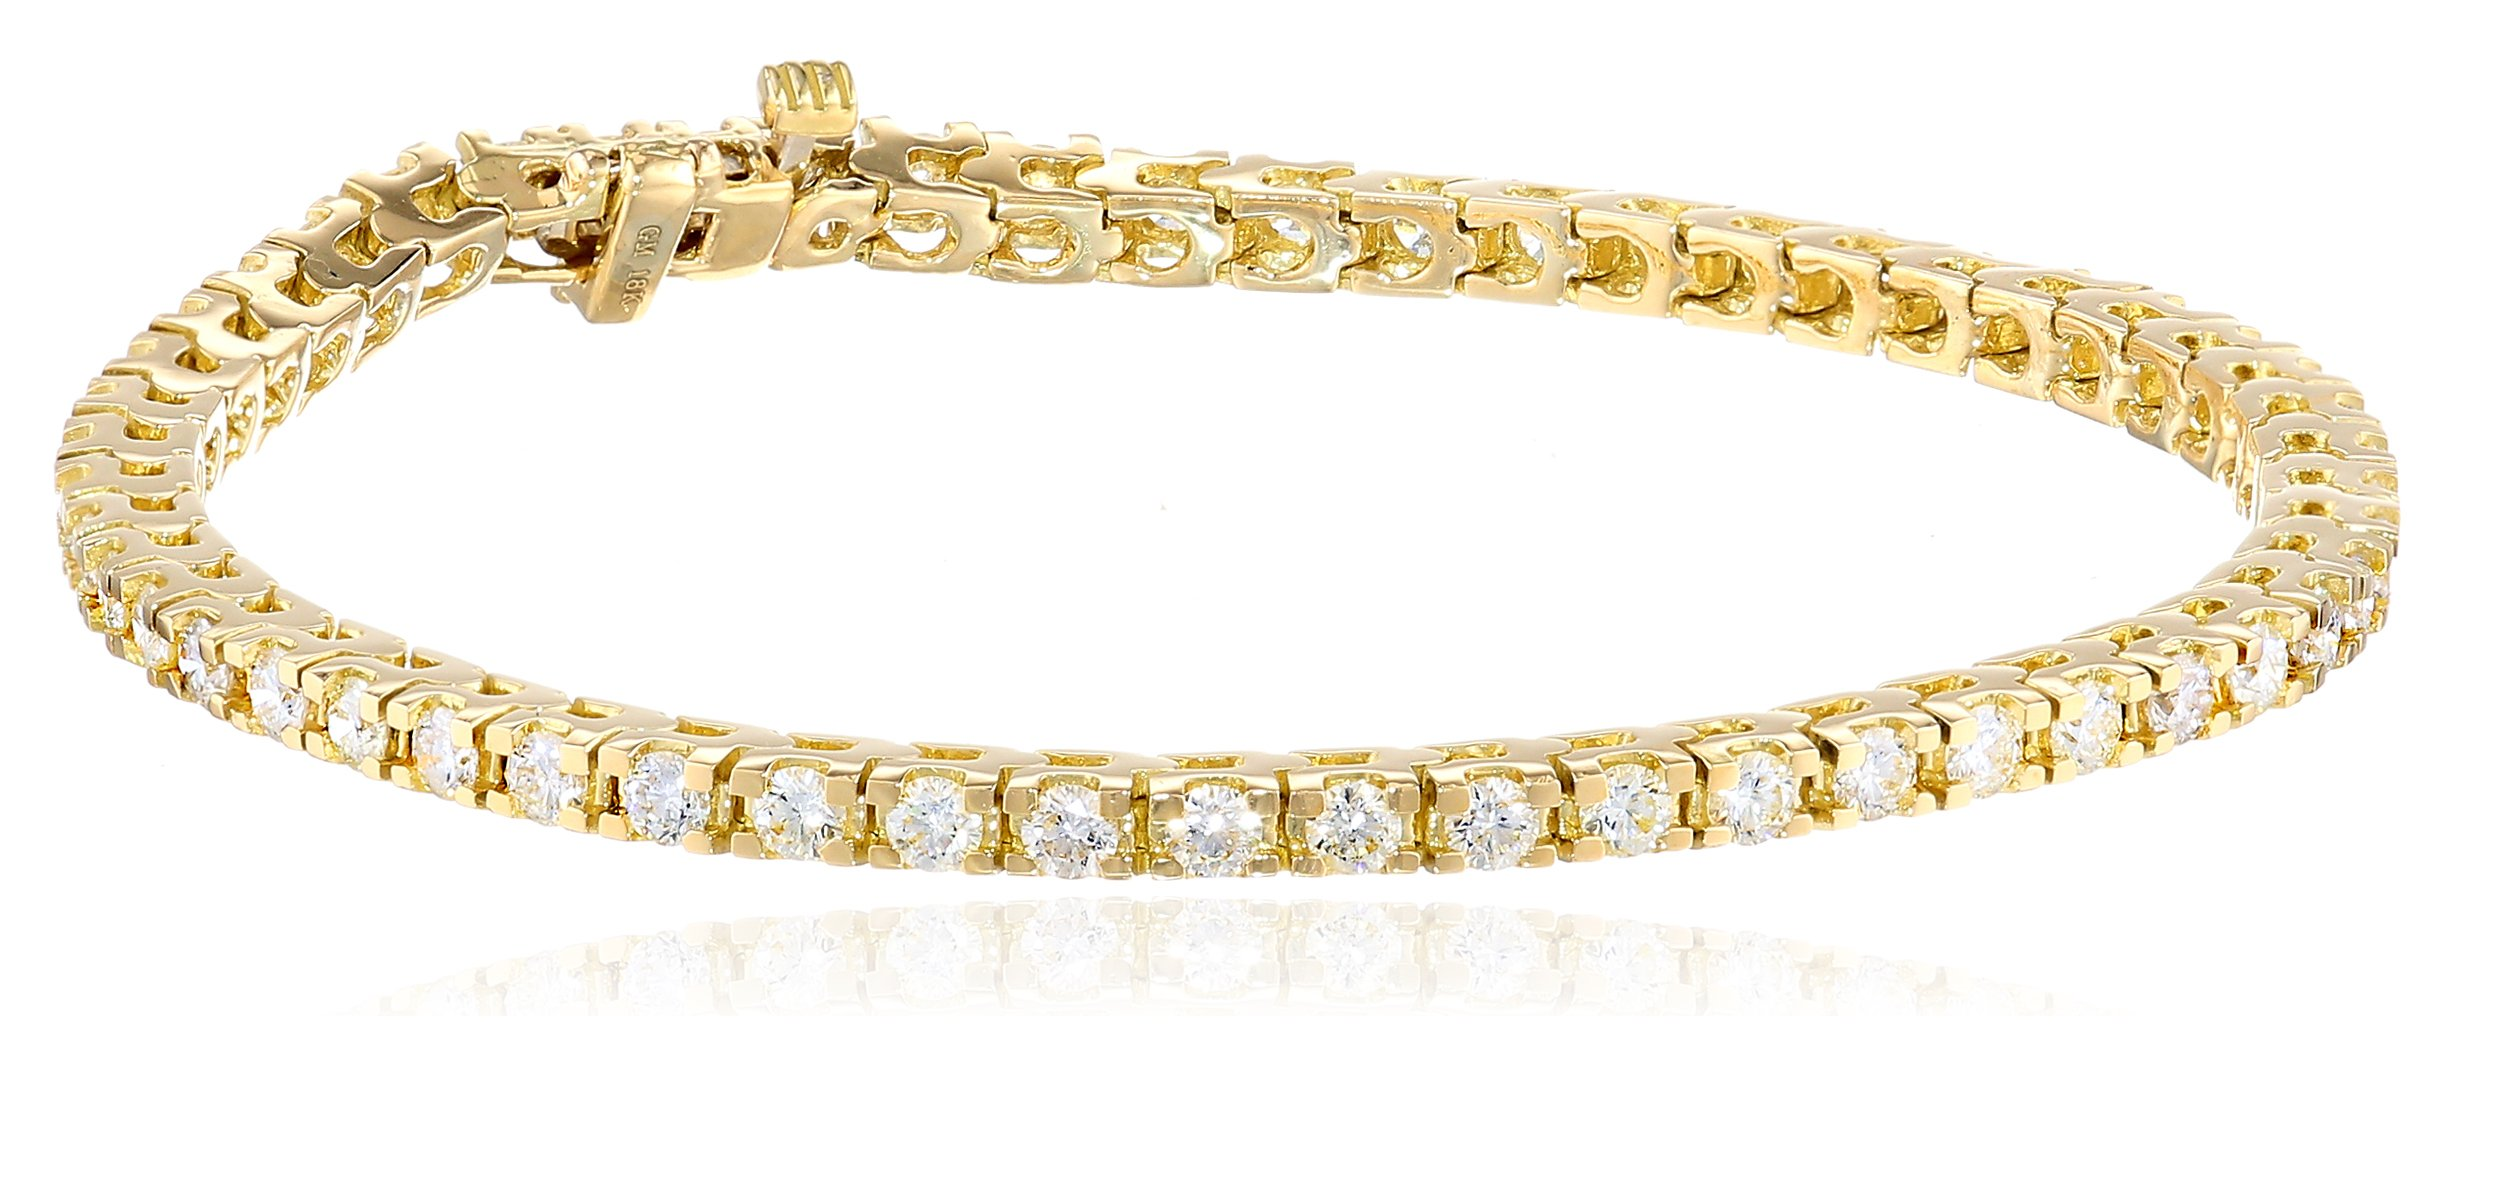 IGI Certified 18k Yellow Gold 4-Prong Diamond Tennis Bracelet (3.0 cttw, H-I Color, SI1-SI2 Clarity), 7''